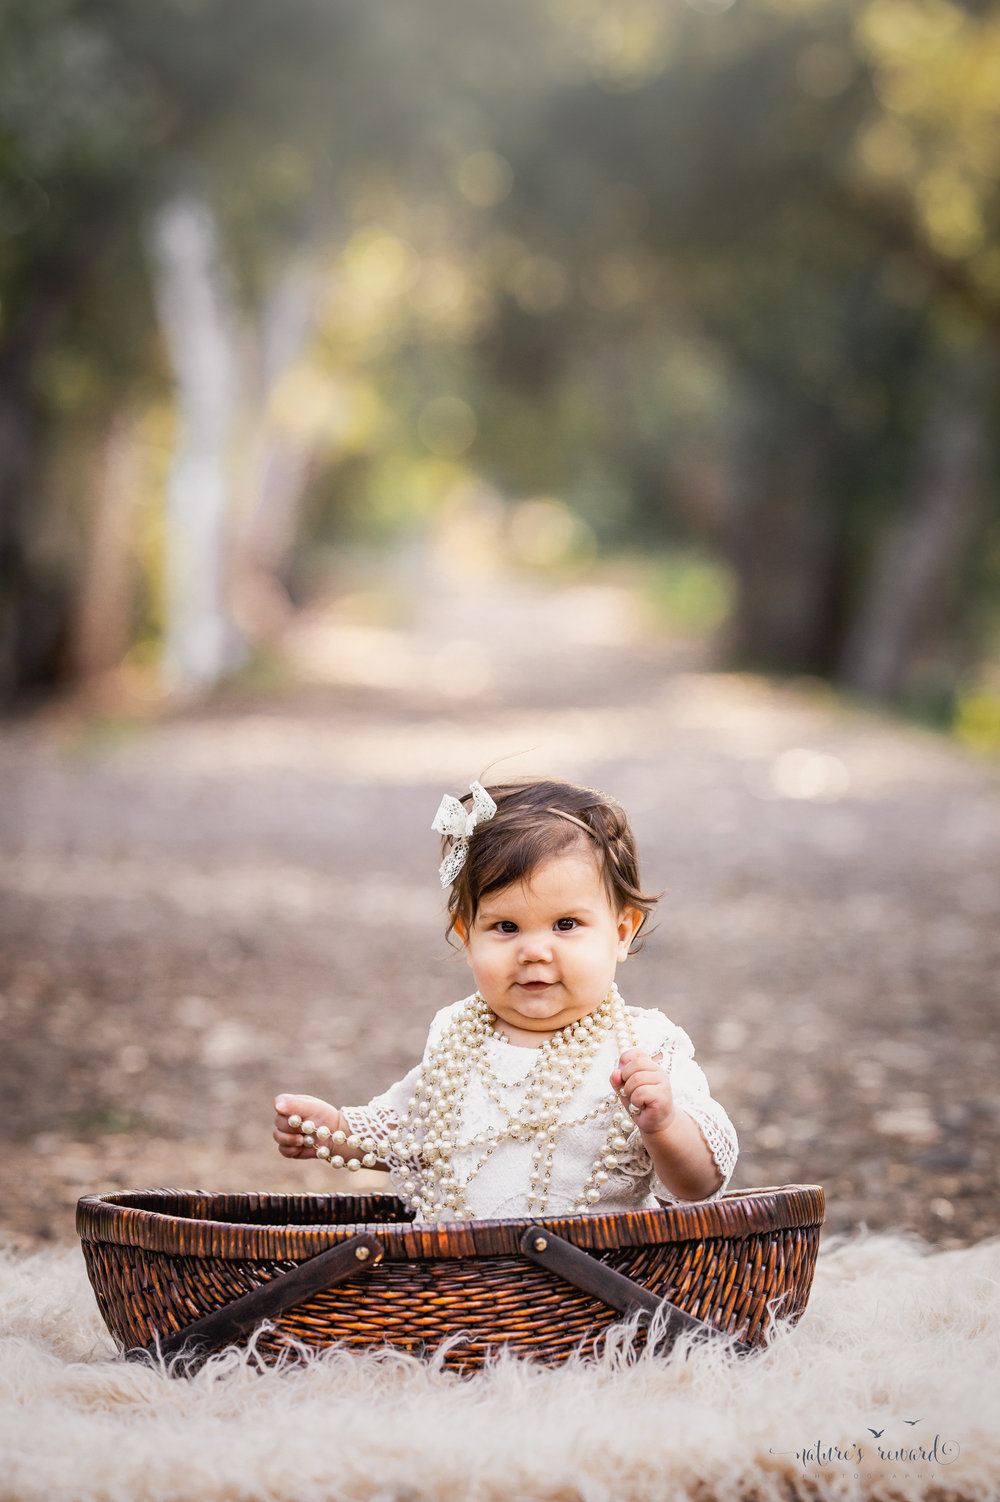 Baby girl sits while wearing a lace romper, pearls, and flower crown on a tree lined path in this portrait by Nature's Reward Photography